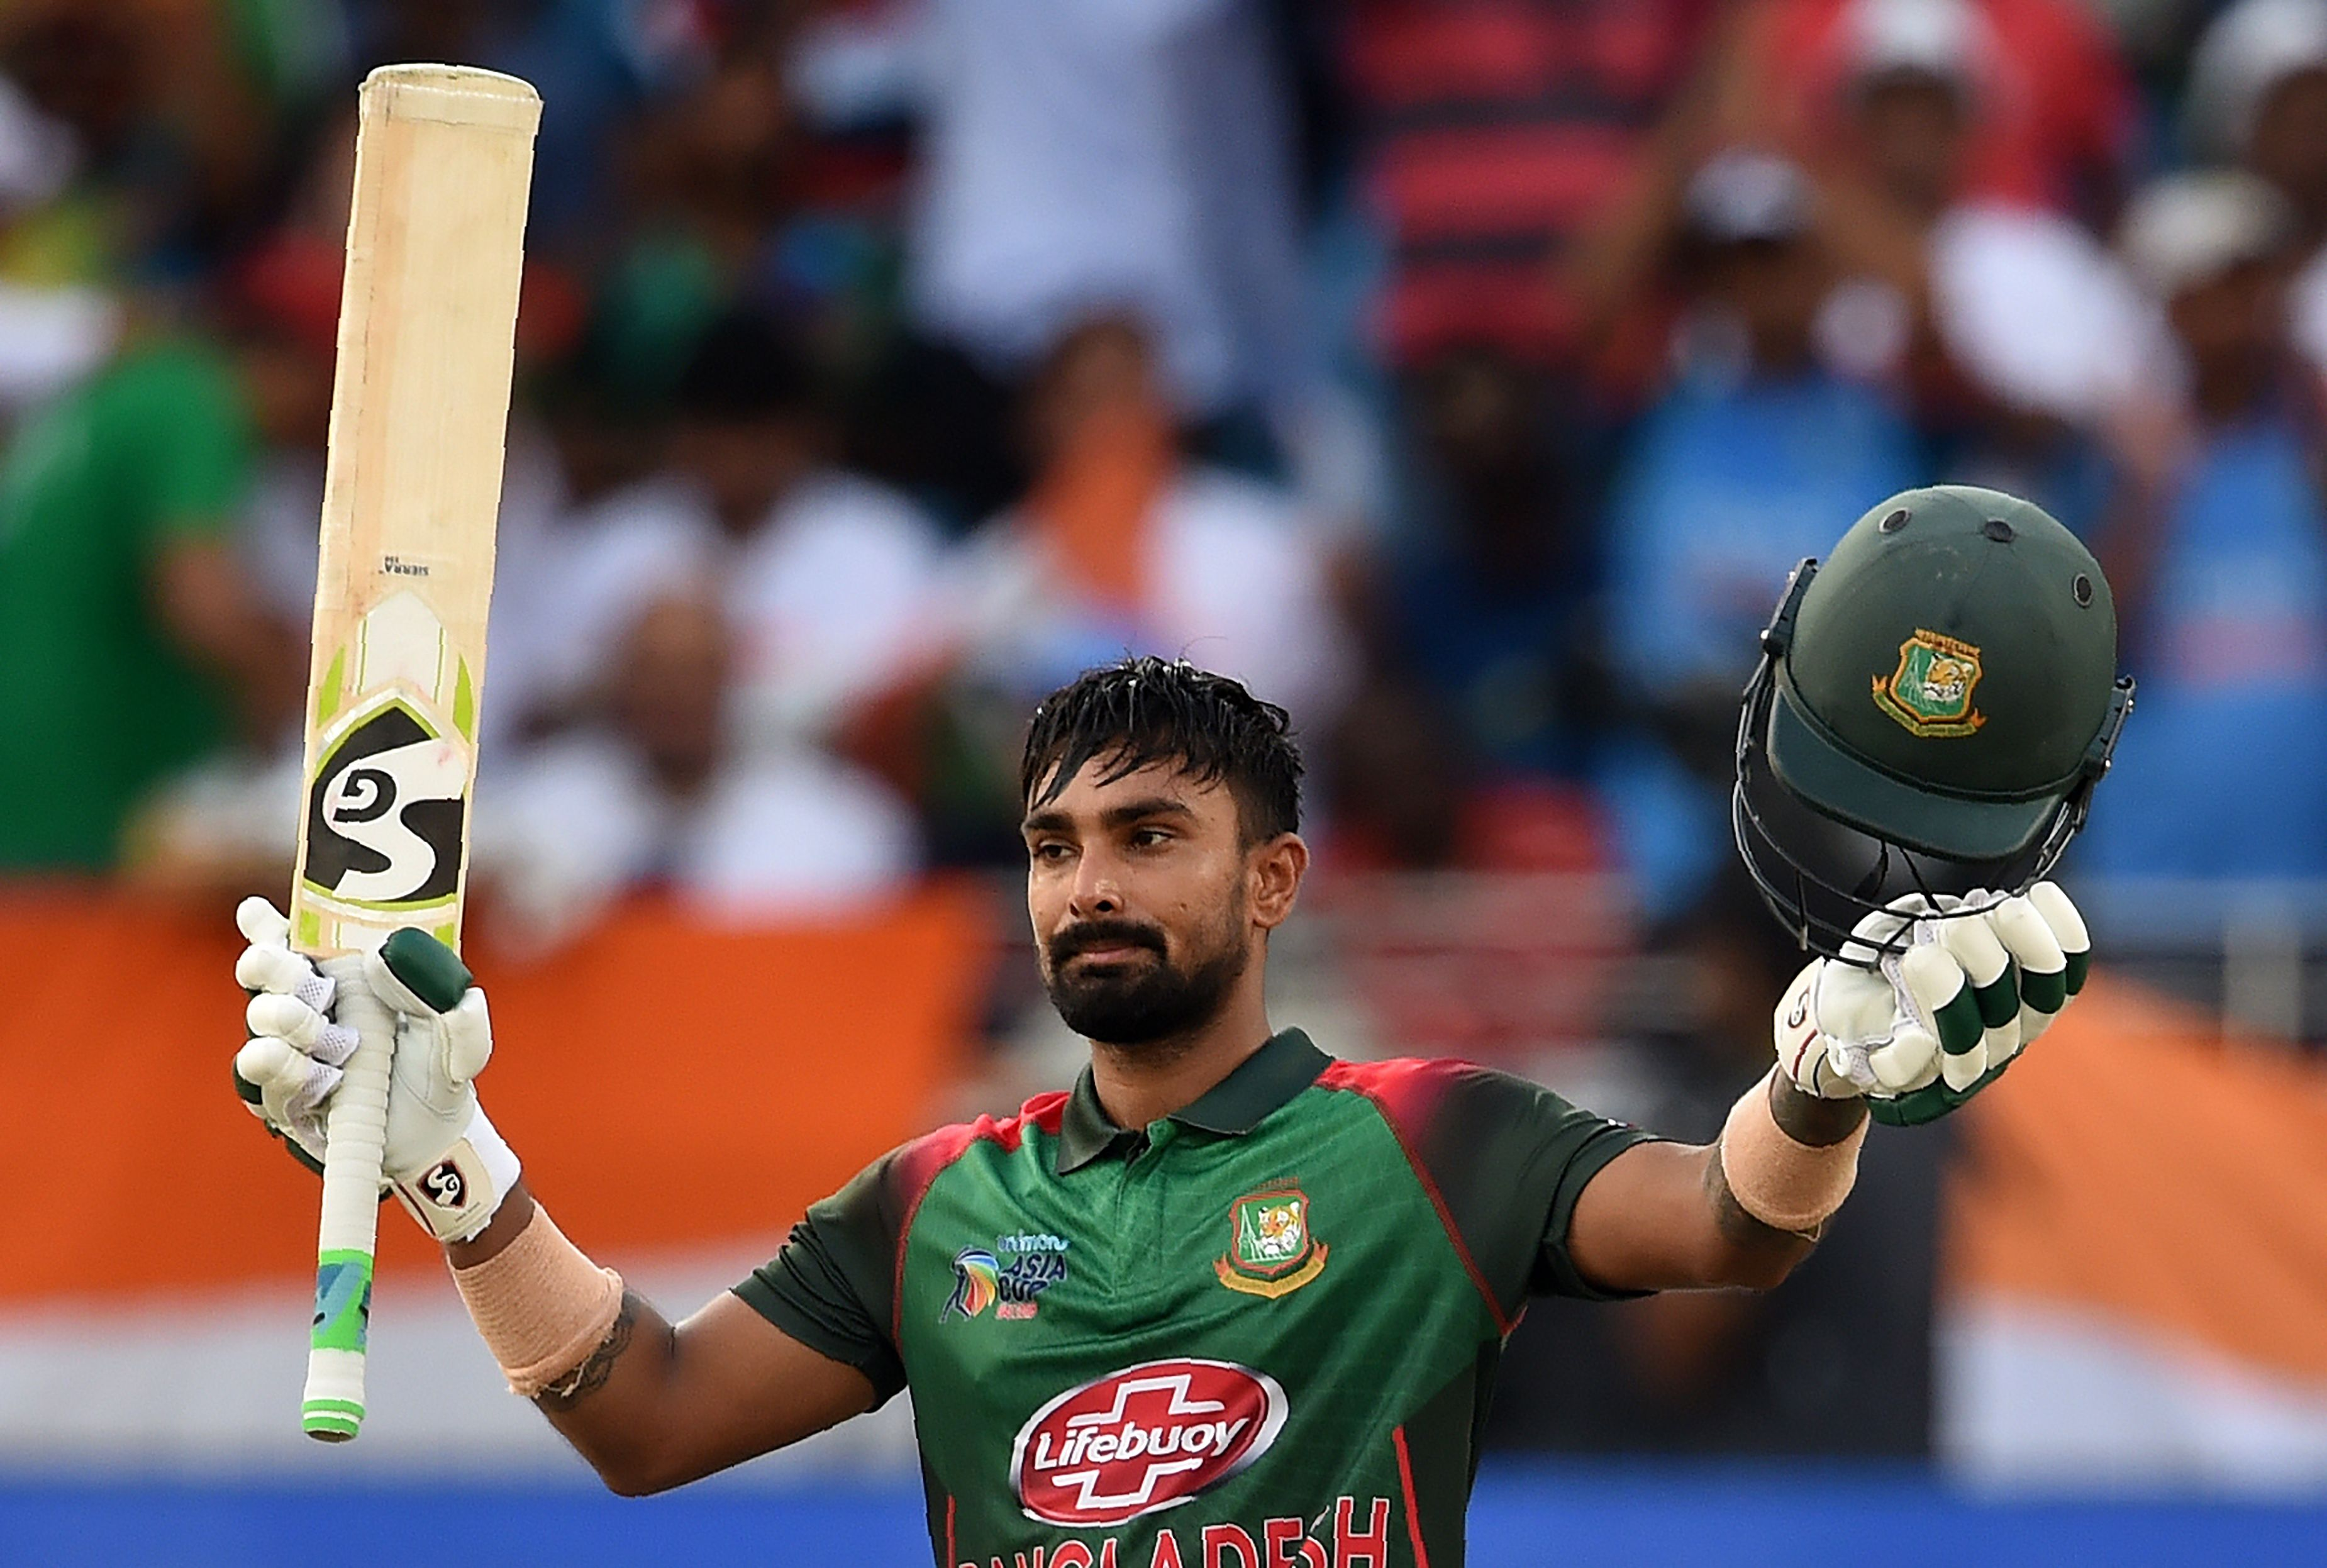 Bangladesh batsman Liton Das celebrates after scoring a century (100 runs) during the final one day international (ODI) Asia Cup cricket match between Bangladesh and India at the Dubai International Cricket Stadium in Dubai on September 28, 2018. / AFP /